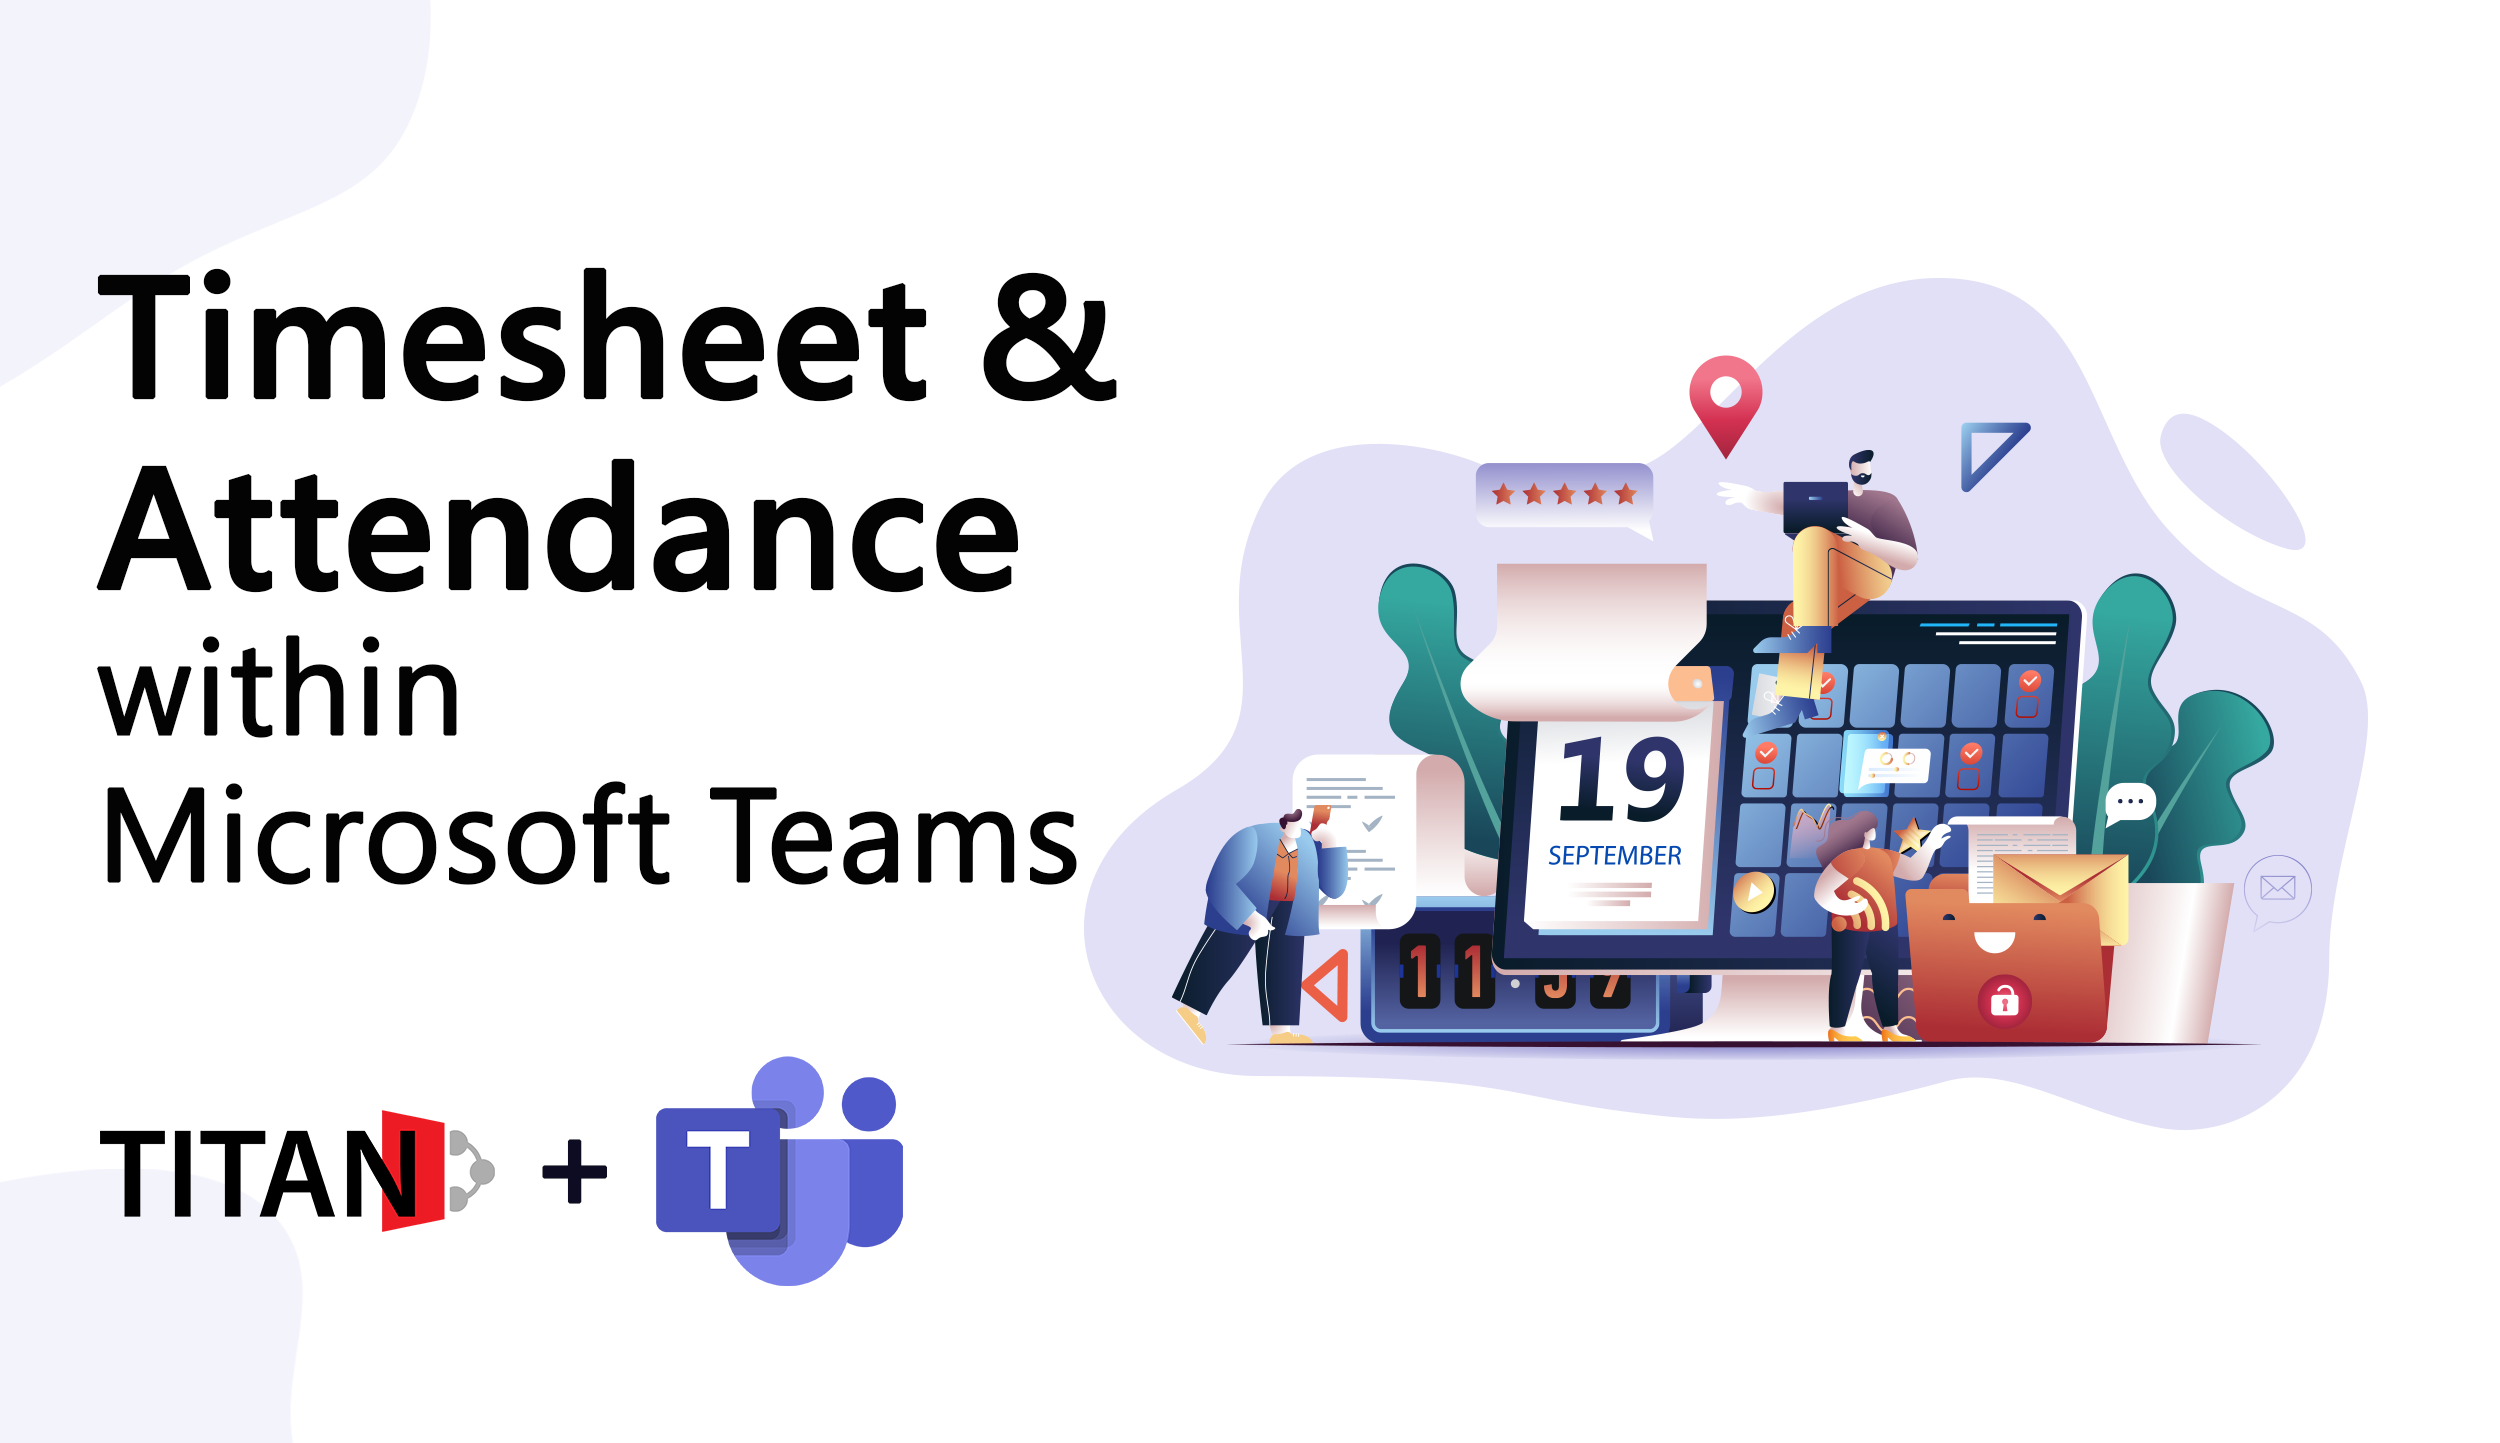 Digital Workplace TITAN releases new features including employee timesheets and Attendance within Mi